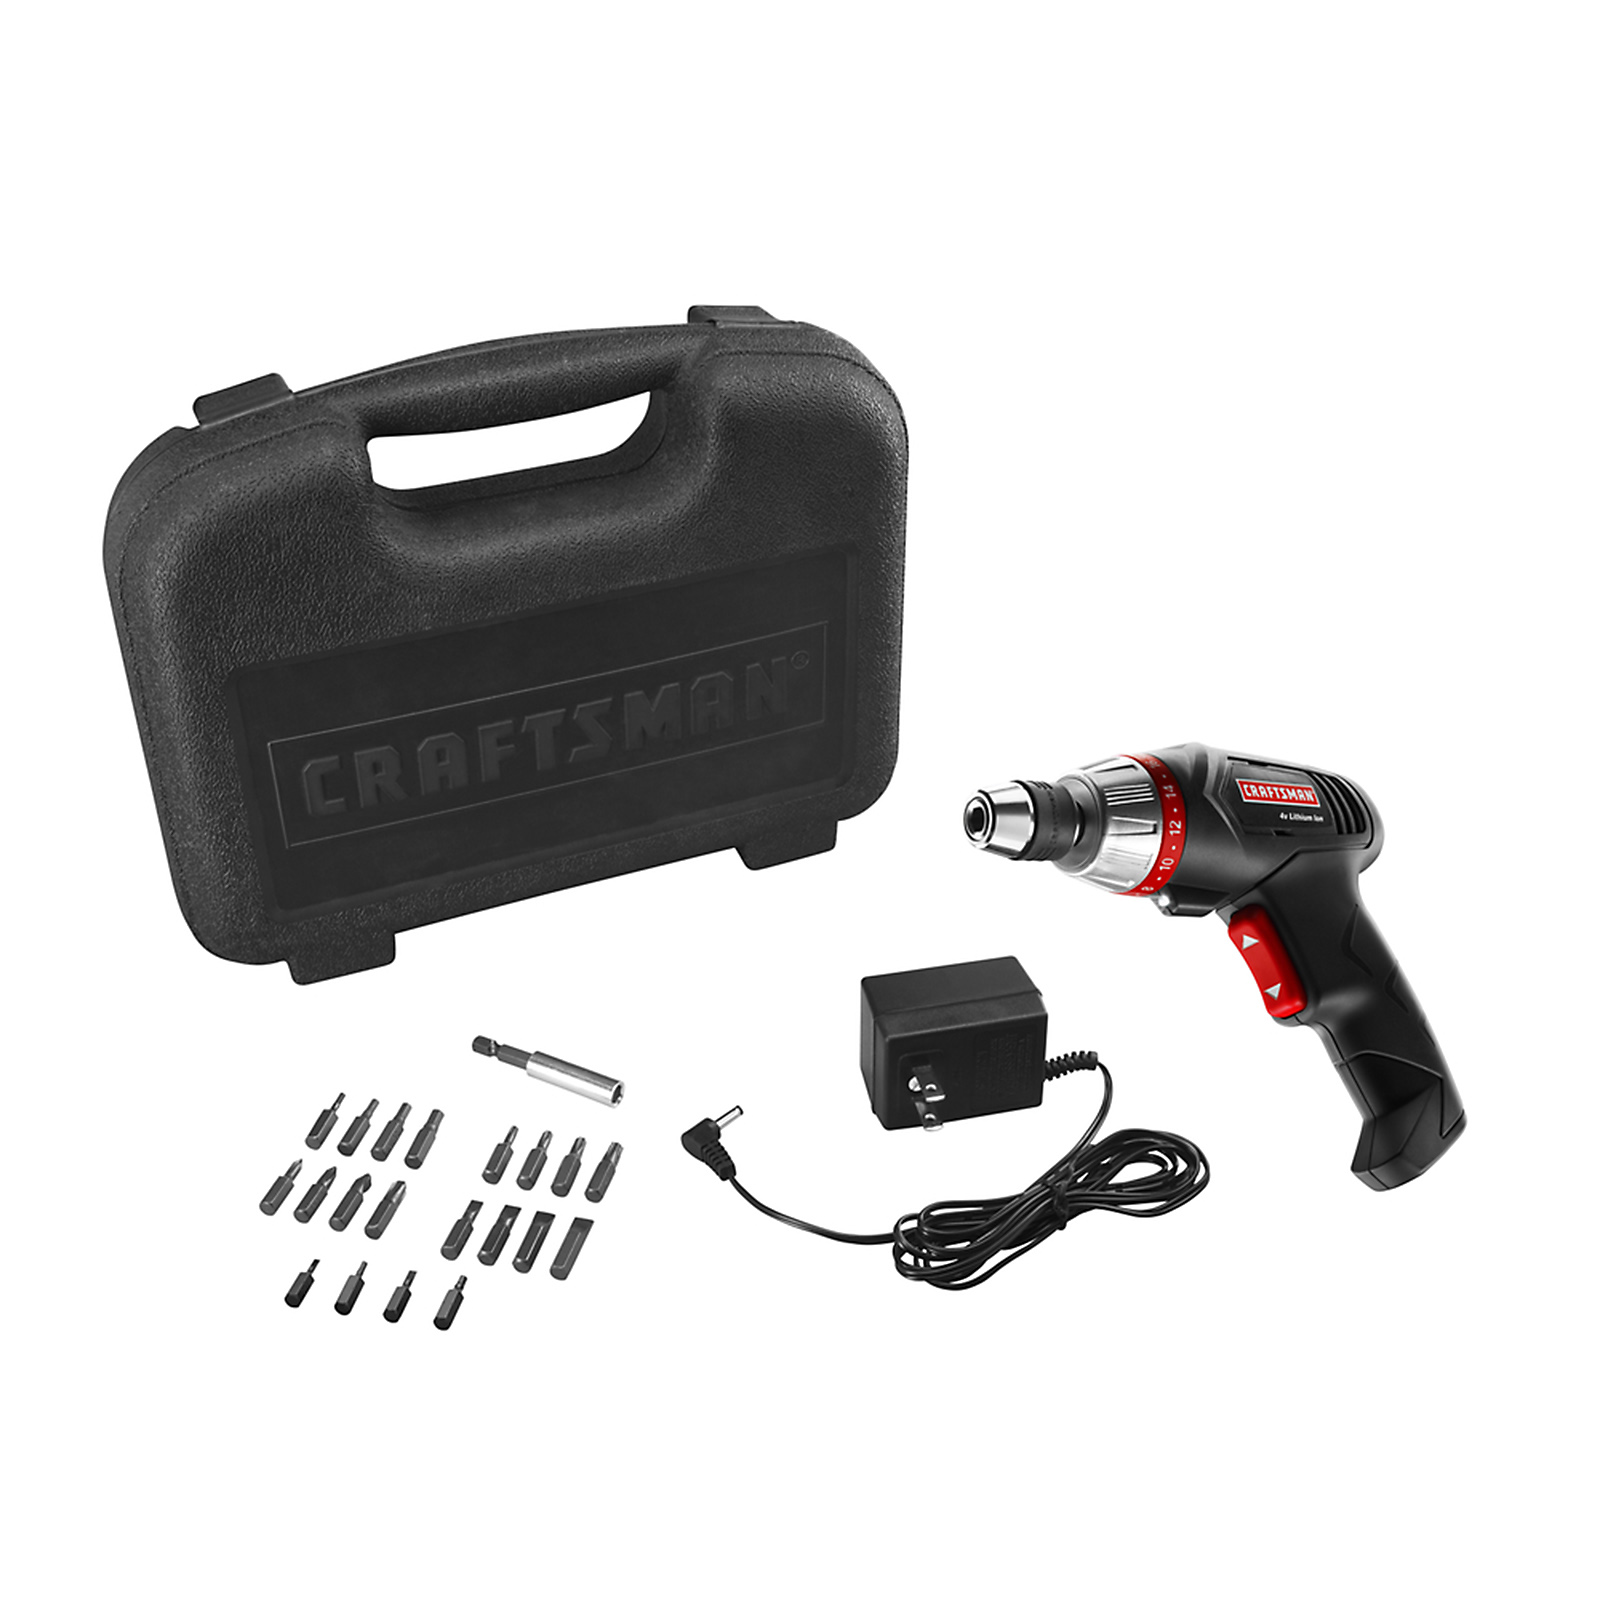 Craftsman 4 Volt Lithium-Ion Cordless 1/4 In. Screwdriver